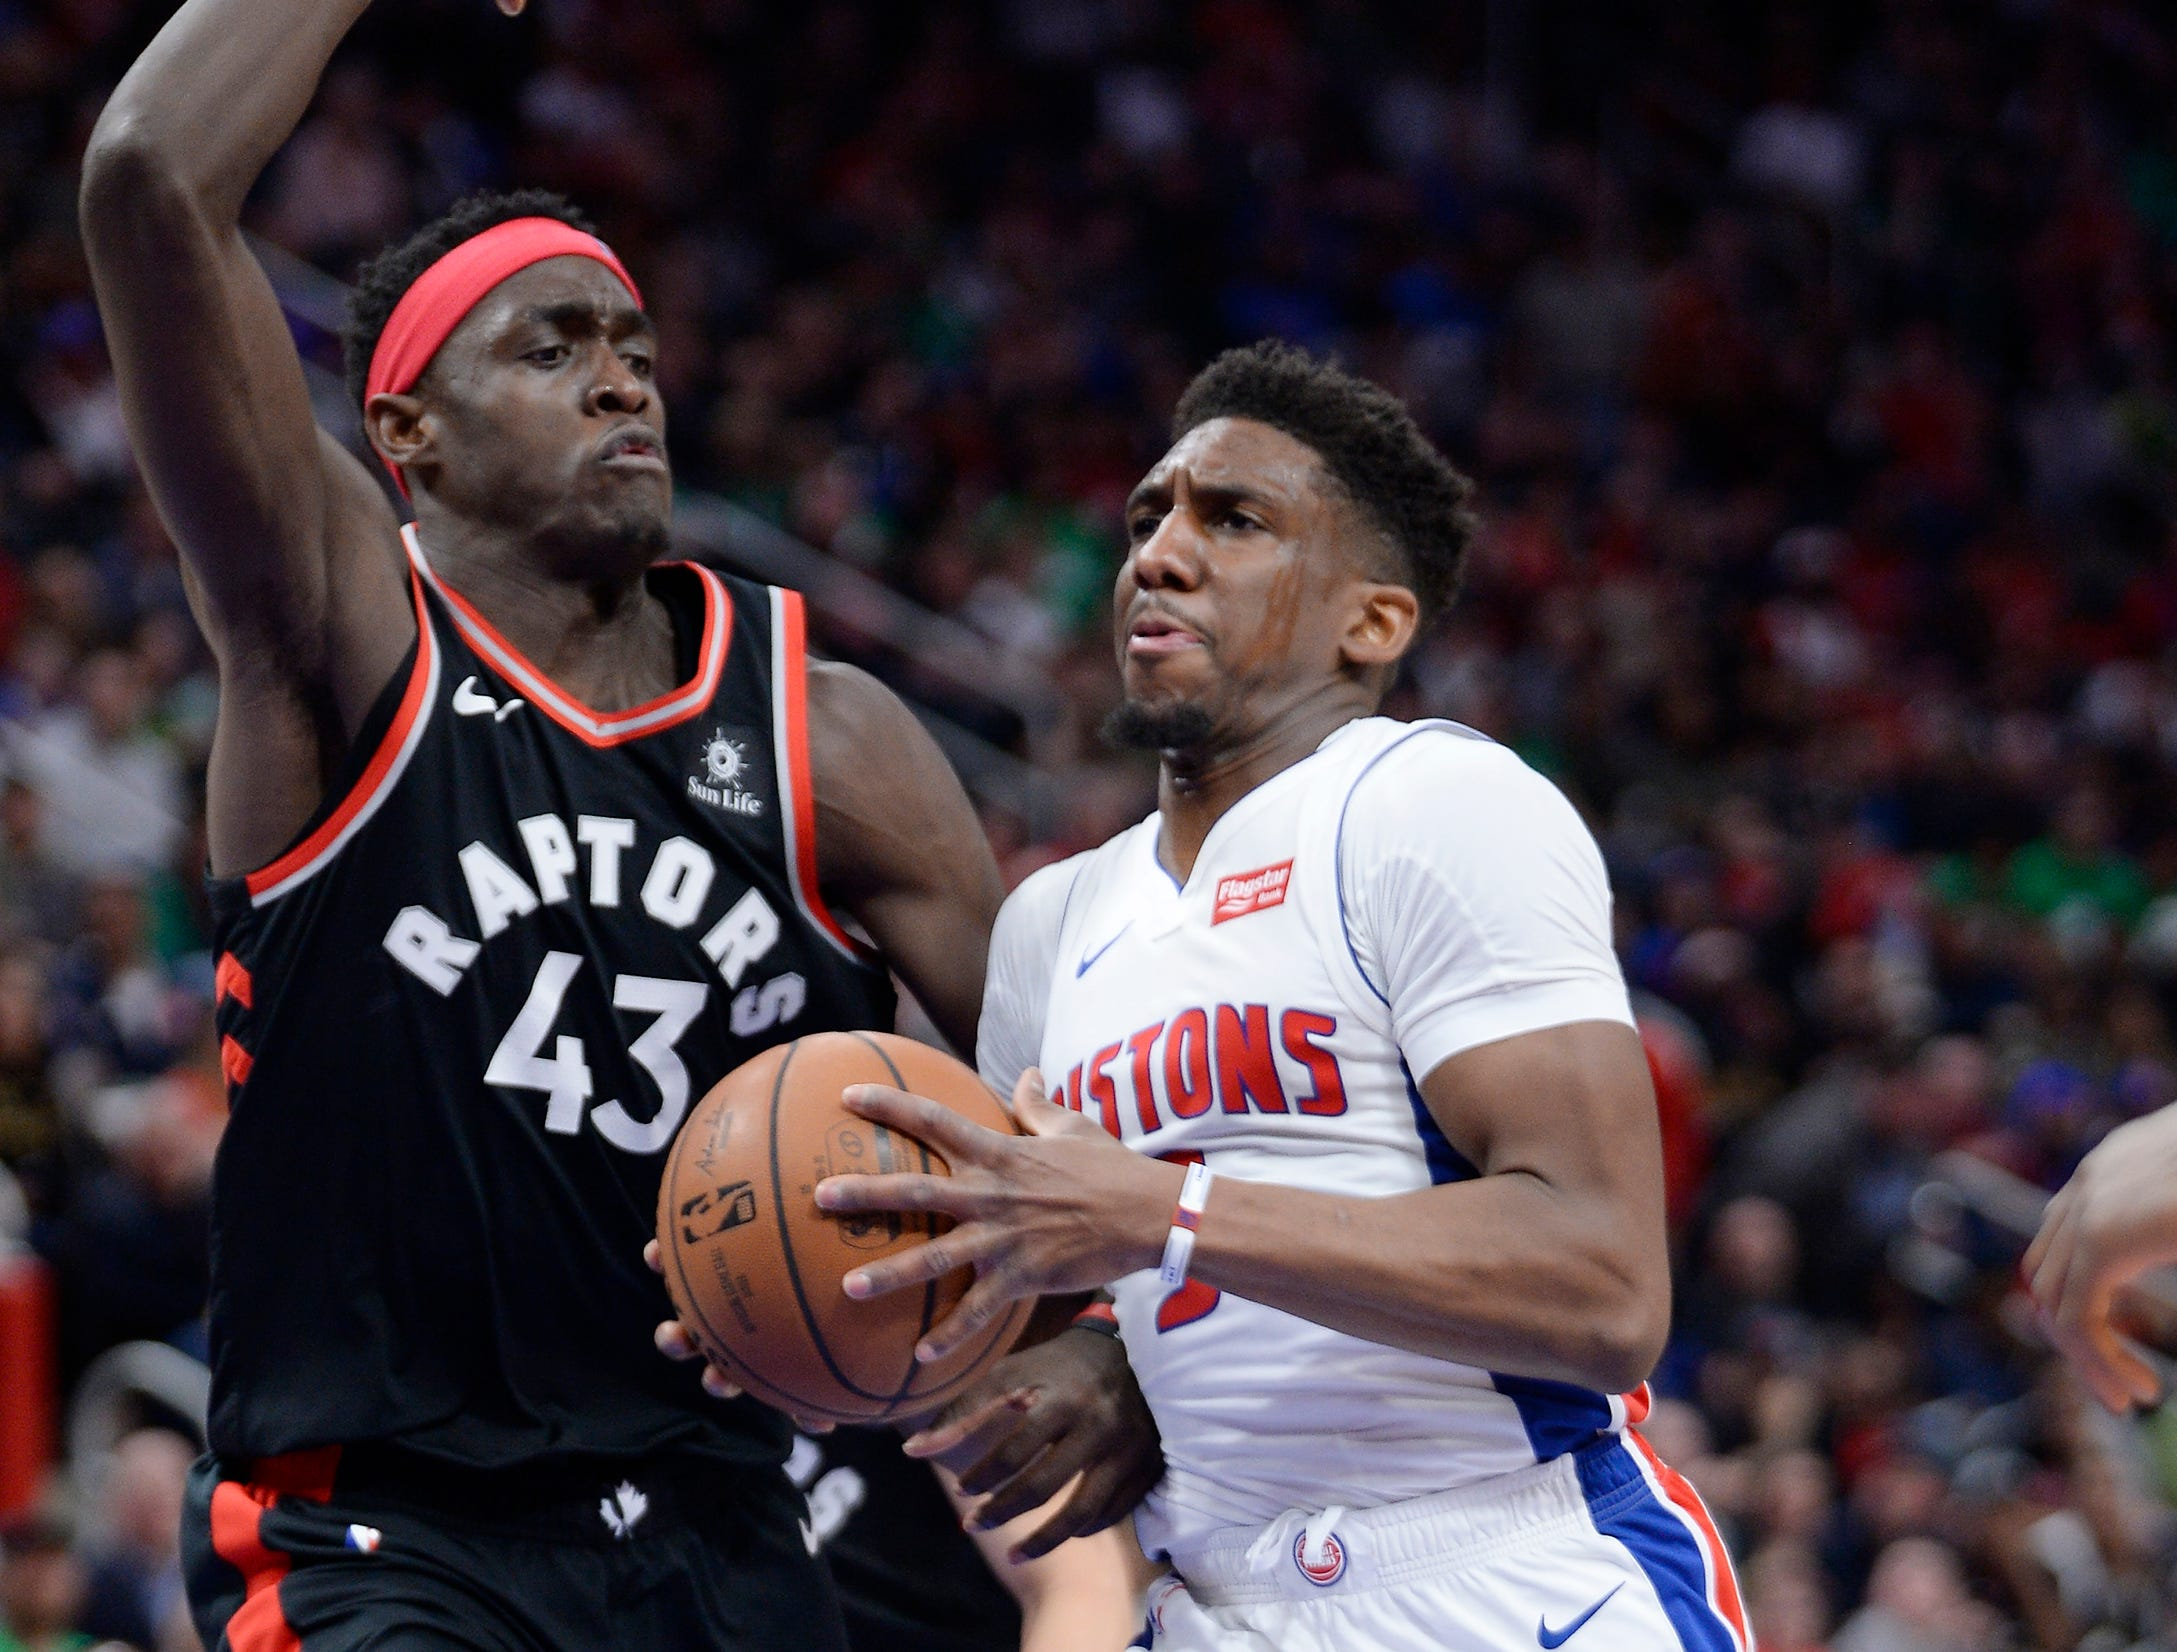 Pistons' Langston Galloway drives around Raptors' Pascal Siakam in the third quarter.